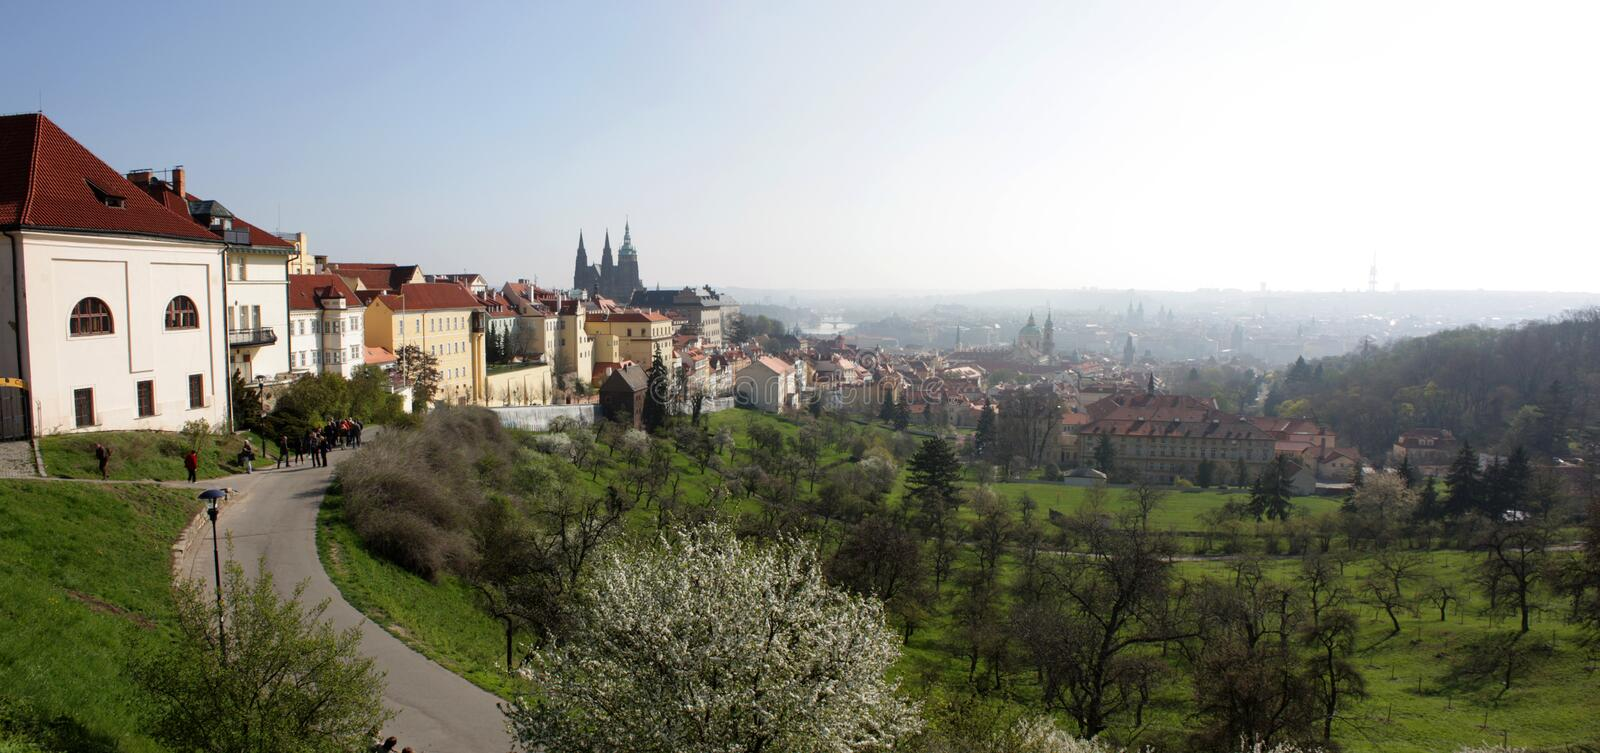 Czech old panoramic royalty free stock photo